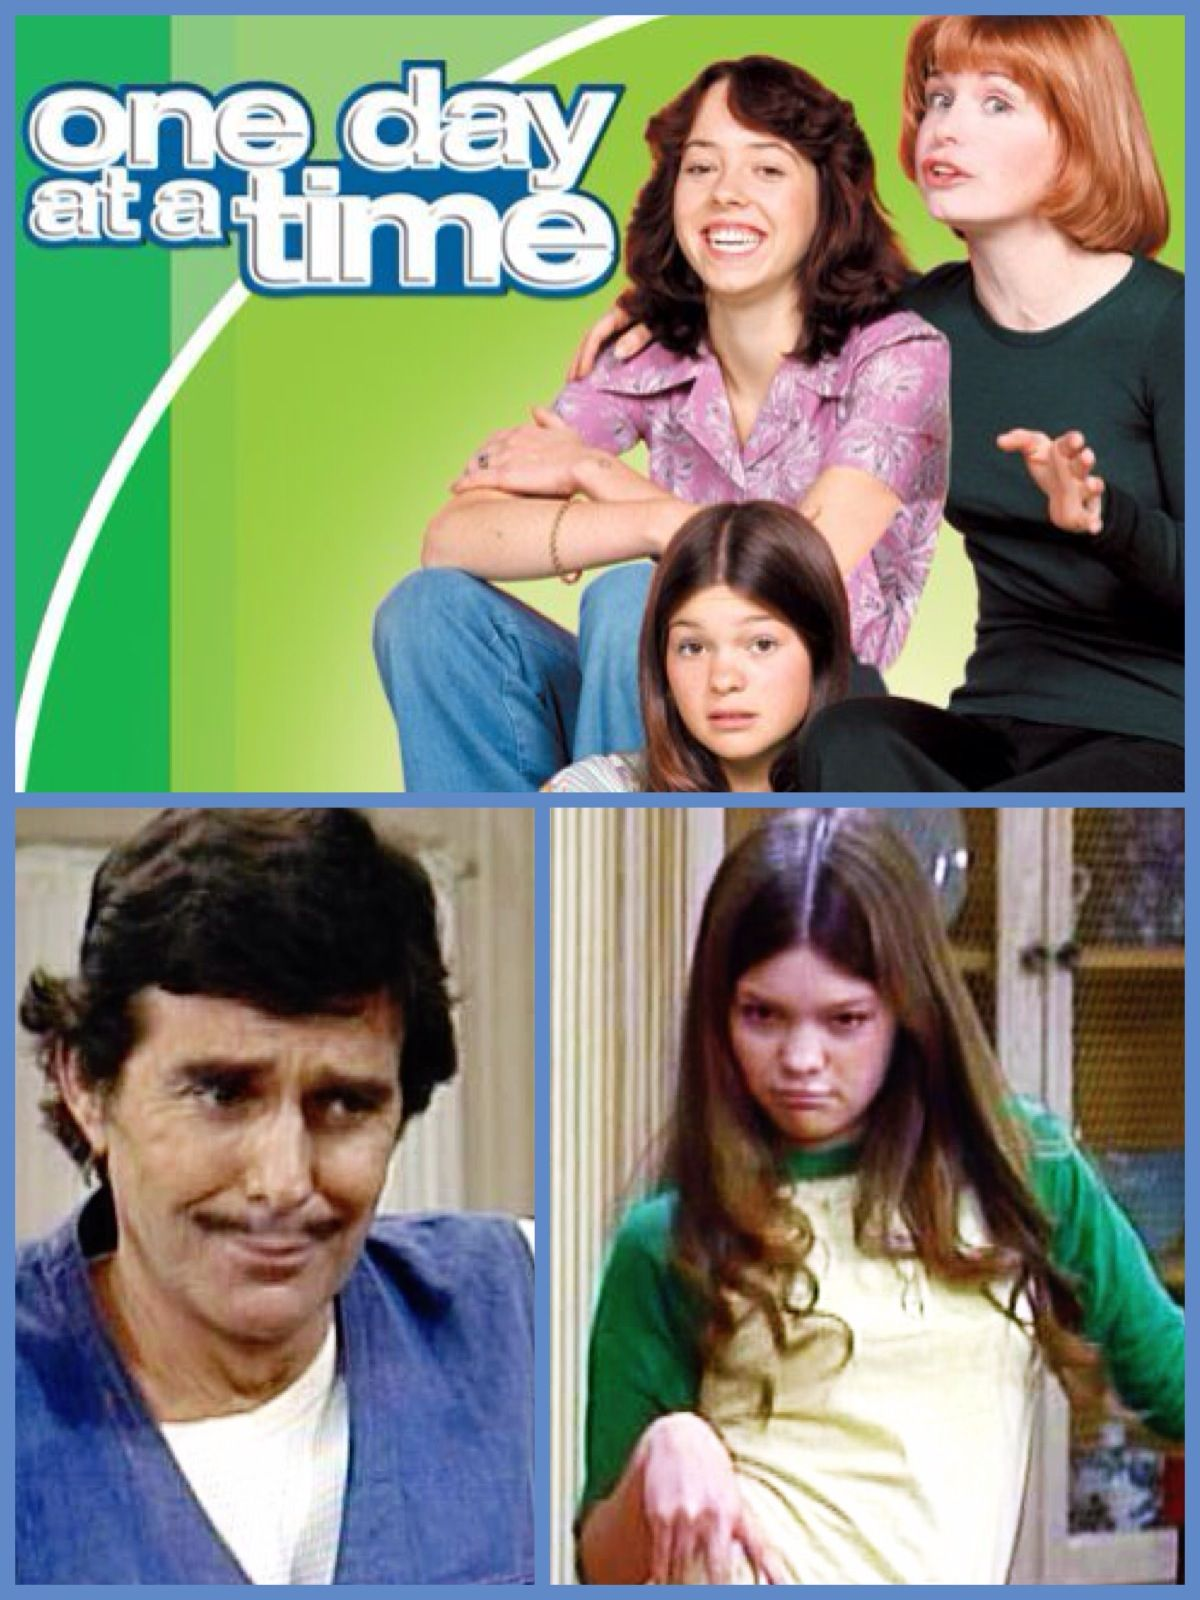 One Day At A Time 1975 1984 Starring Bonnie Franklin As Ann Romano A Divorced Mother Who Moves To Marion County Family Tv 70s Tv Shows Valerie Bertinelli